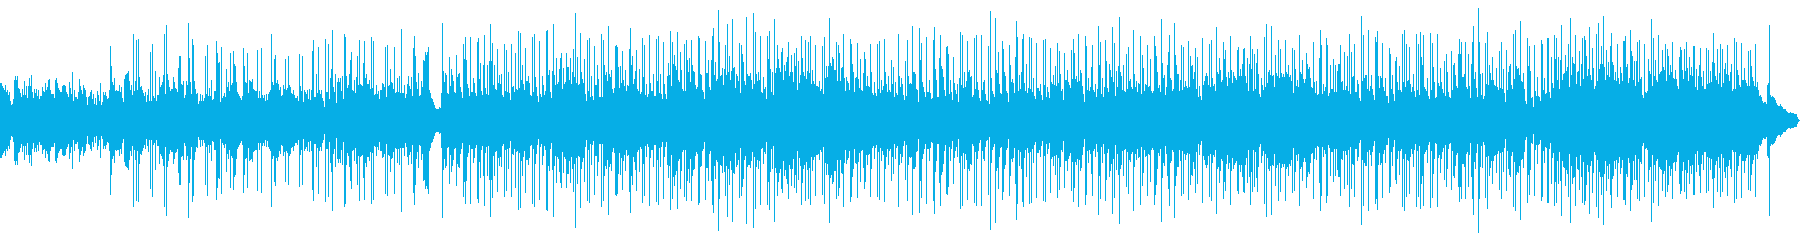 A calm and calm melody's reproduced waveform